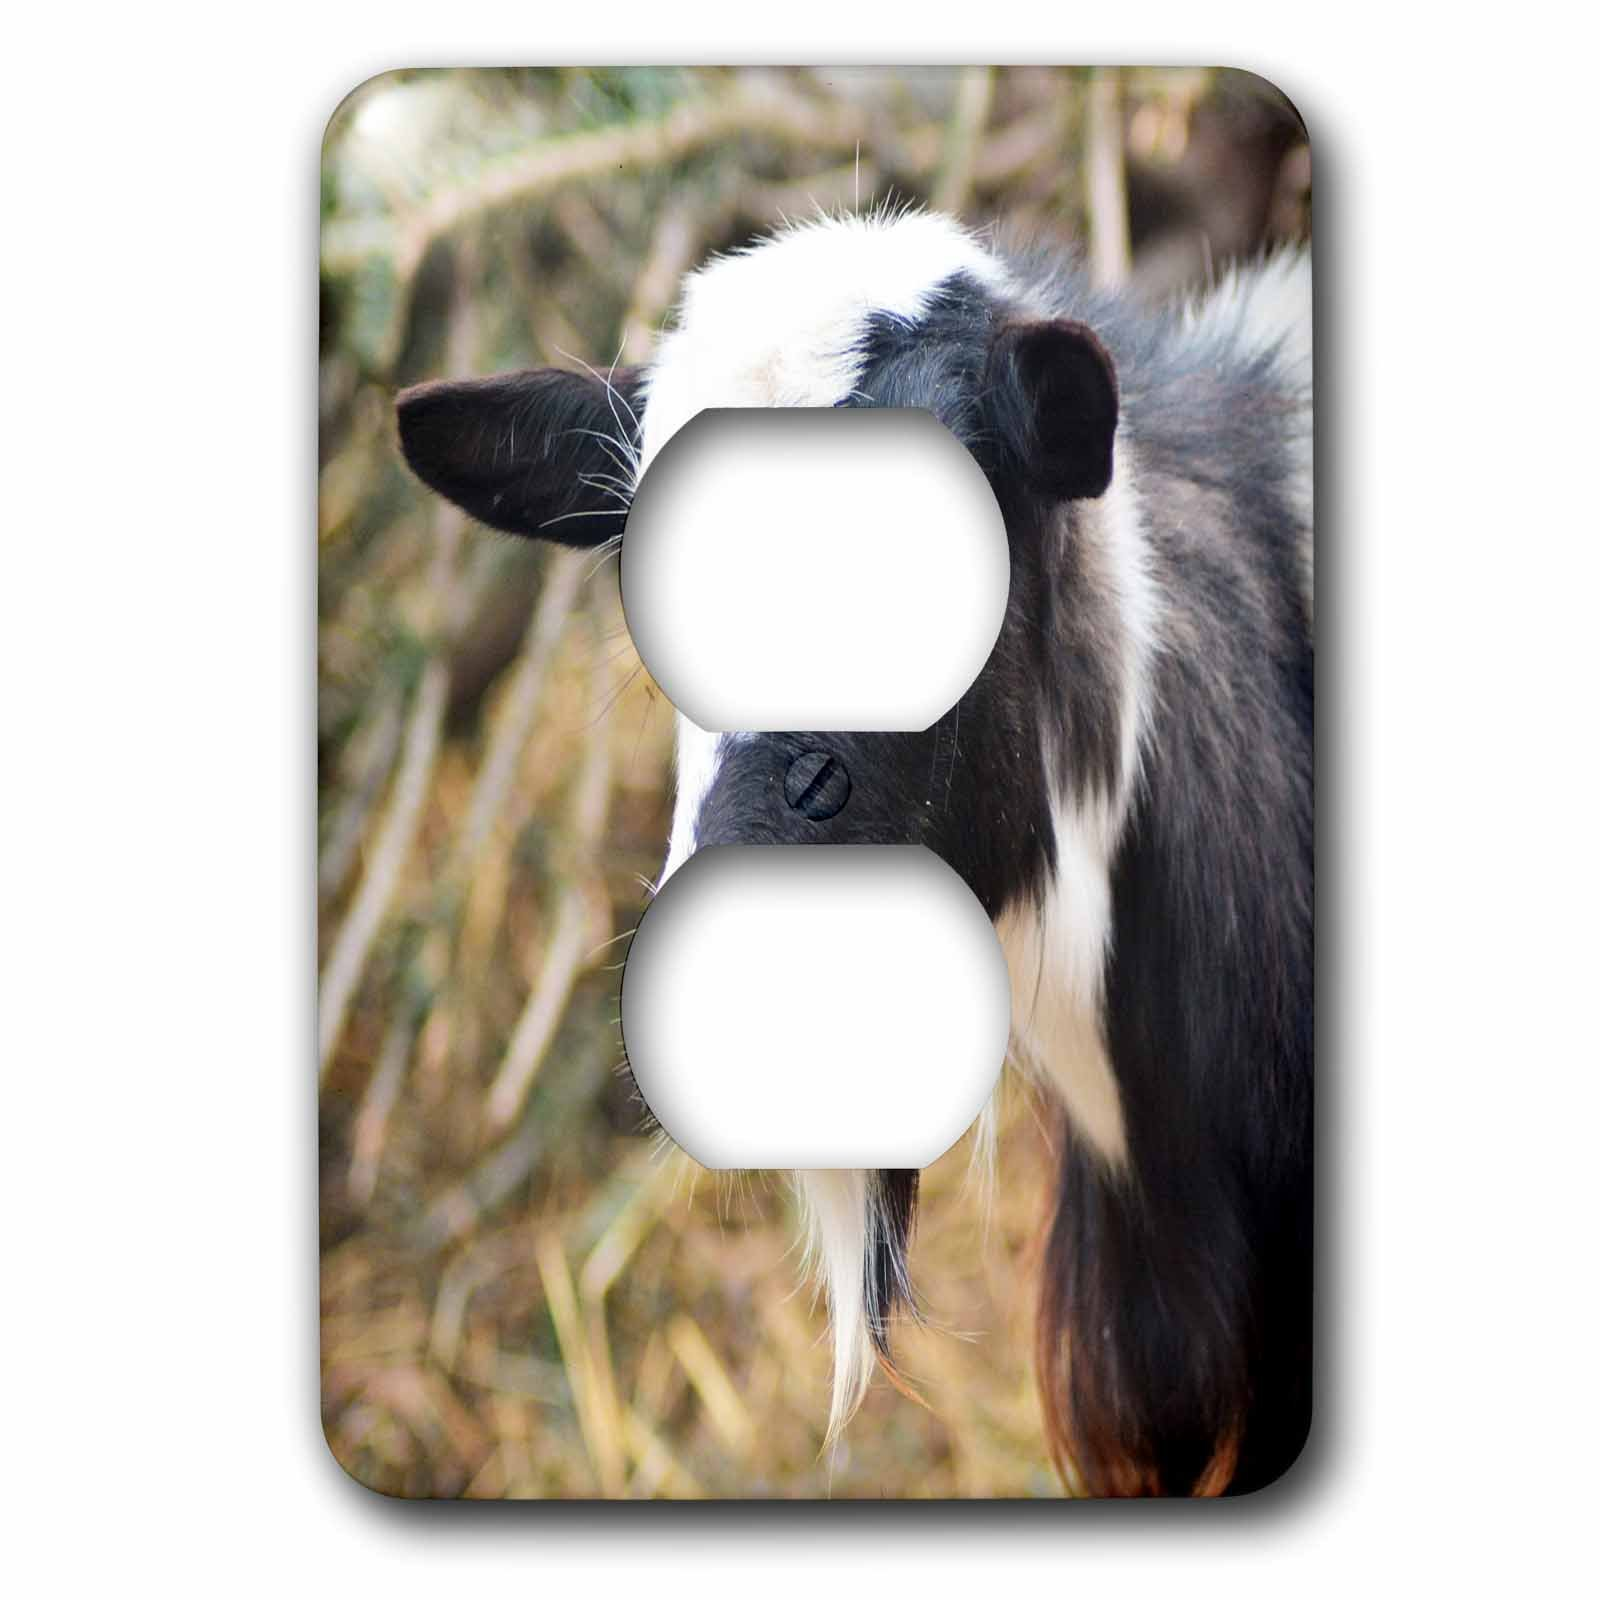 3dRose WhiteOaks Photography and Artwork - Goats - Ying Yang Goat is a photo of a goat that reminded me of ying yang - Light Switch Covers - 2 plug outlet cover (lsp_265343_6)